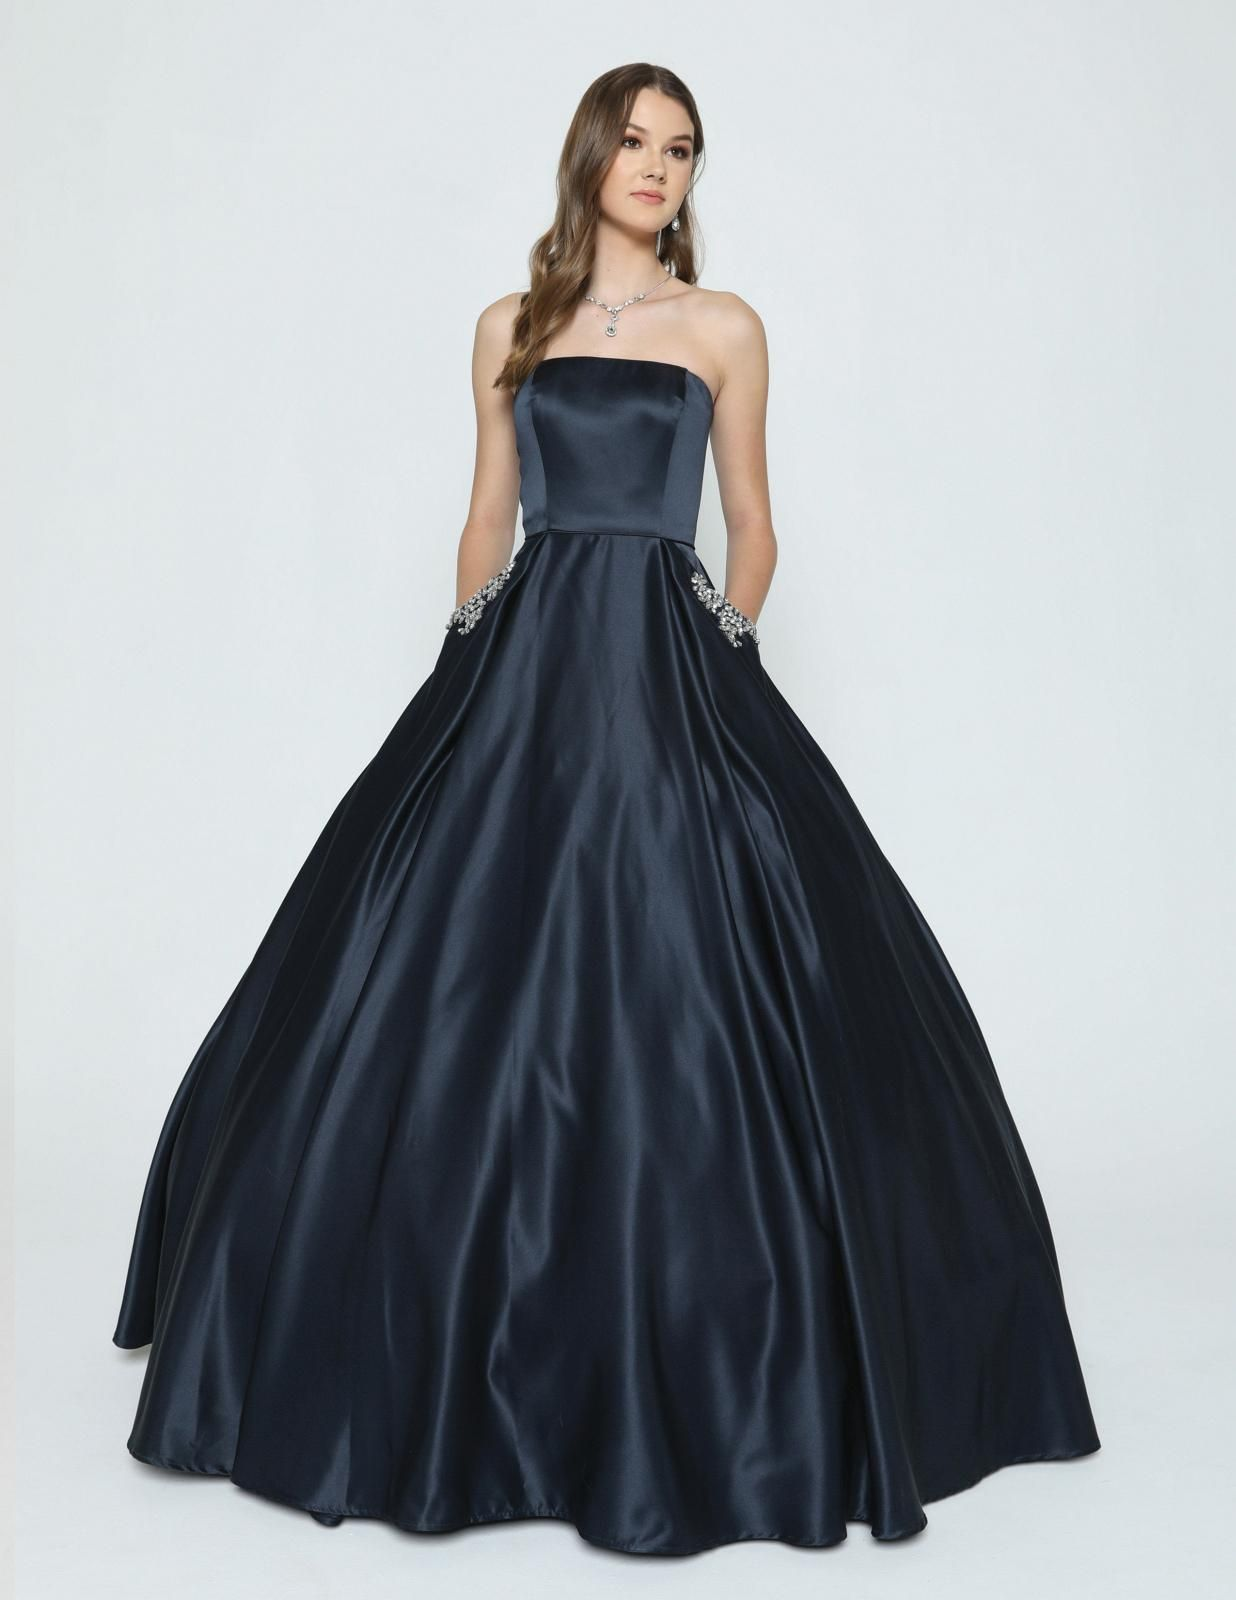 Navy Blue Strapless Prom Gown With Beaded Pockets Prom Gown Ball Gowns Prom Ball Gowns [ 1600 x 1236 Pixel ]